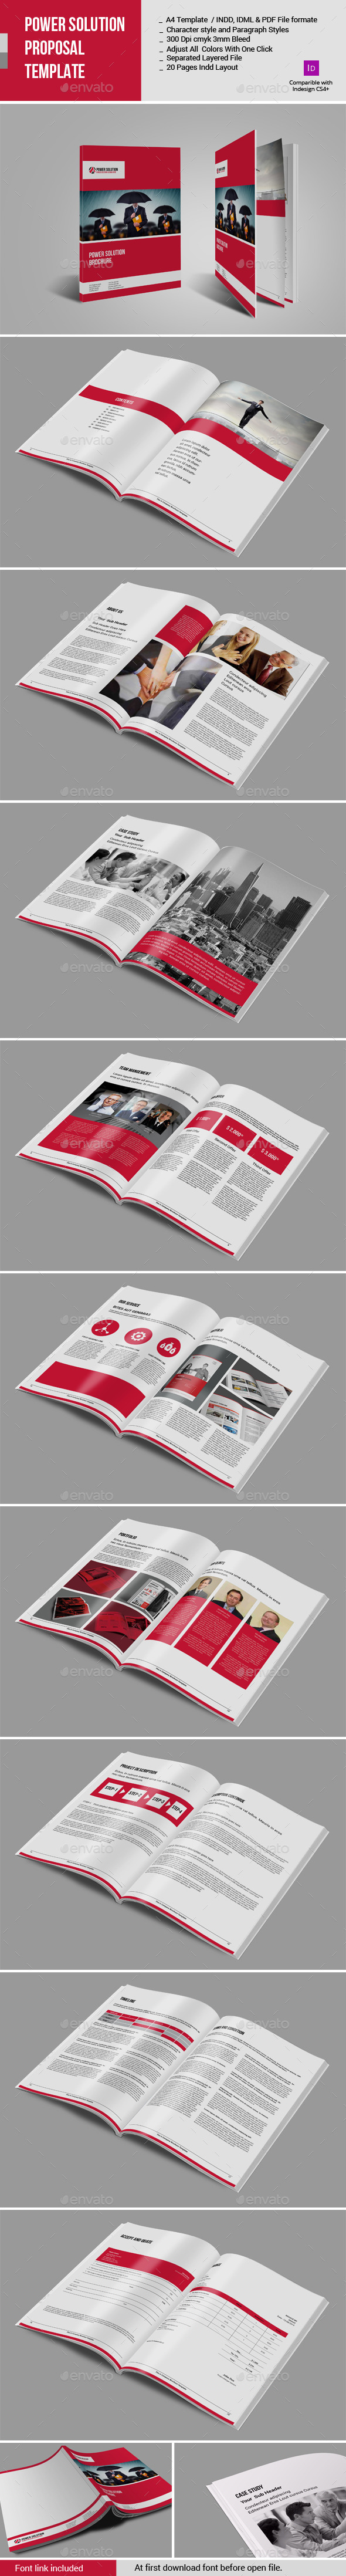 GraphicRiver Power Solution Proposal Template 10906506